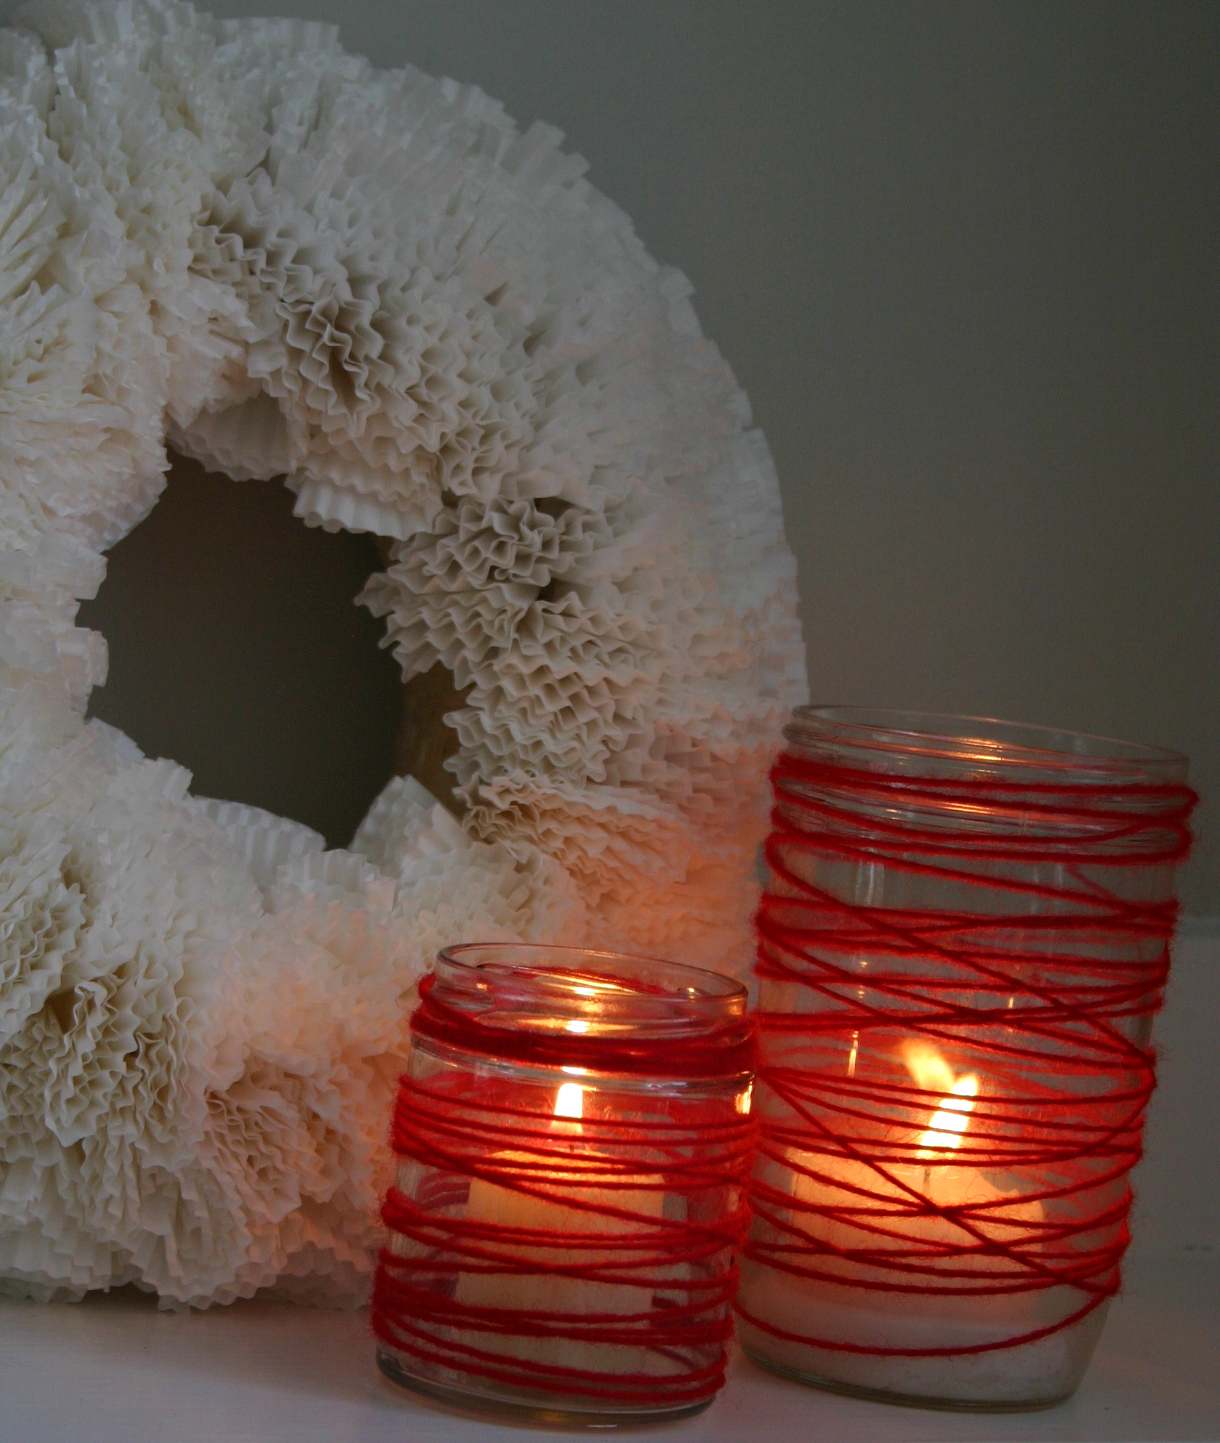 Jars are wrapped in red yarn to create simple & festive lighting for Valentine's Day - another easy craft for kids.